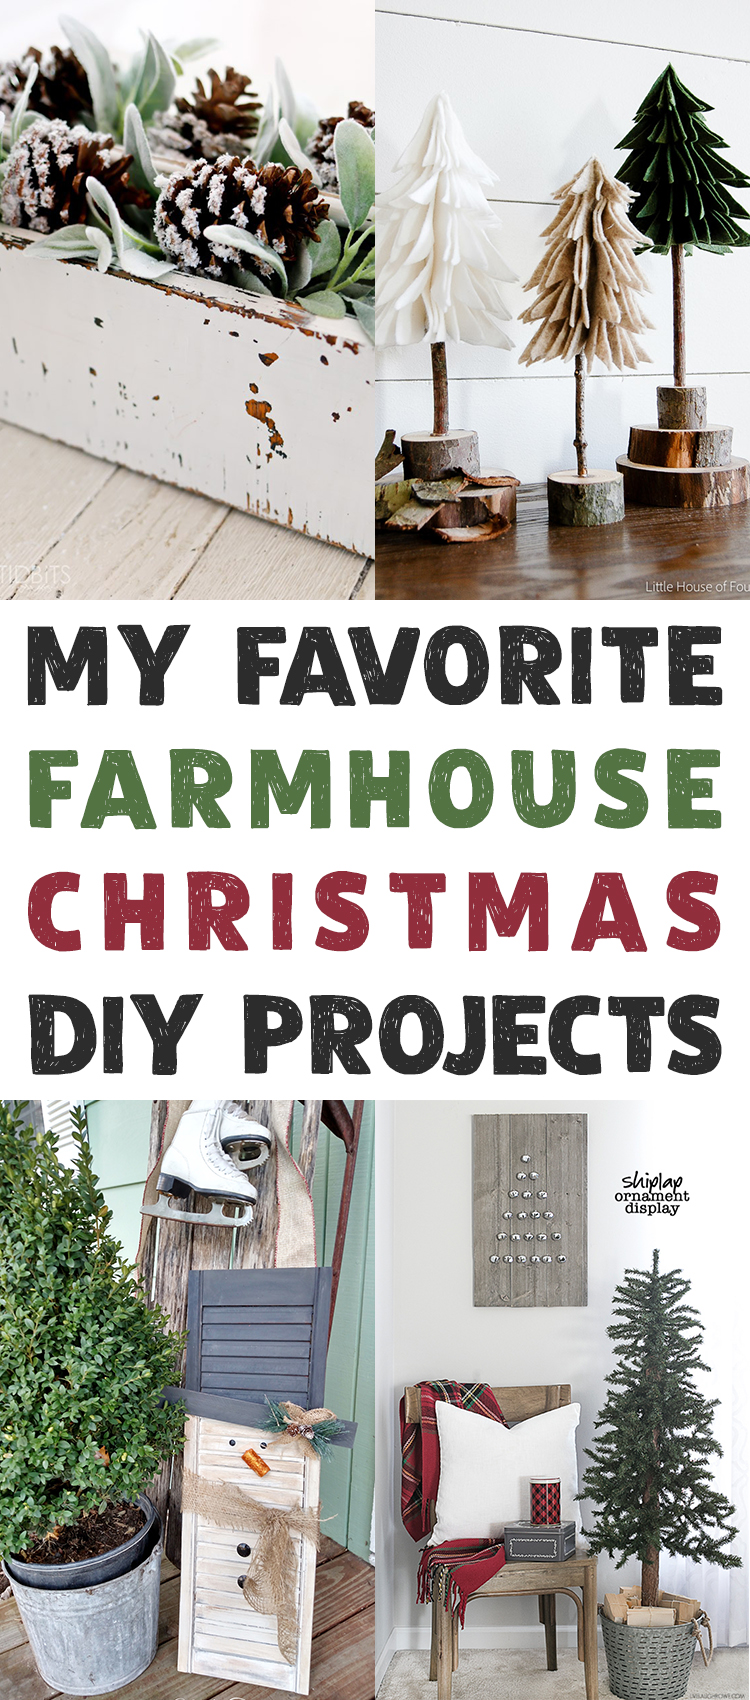 My Favorite Farmhouse Christmas DIY Projects